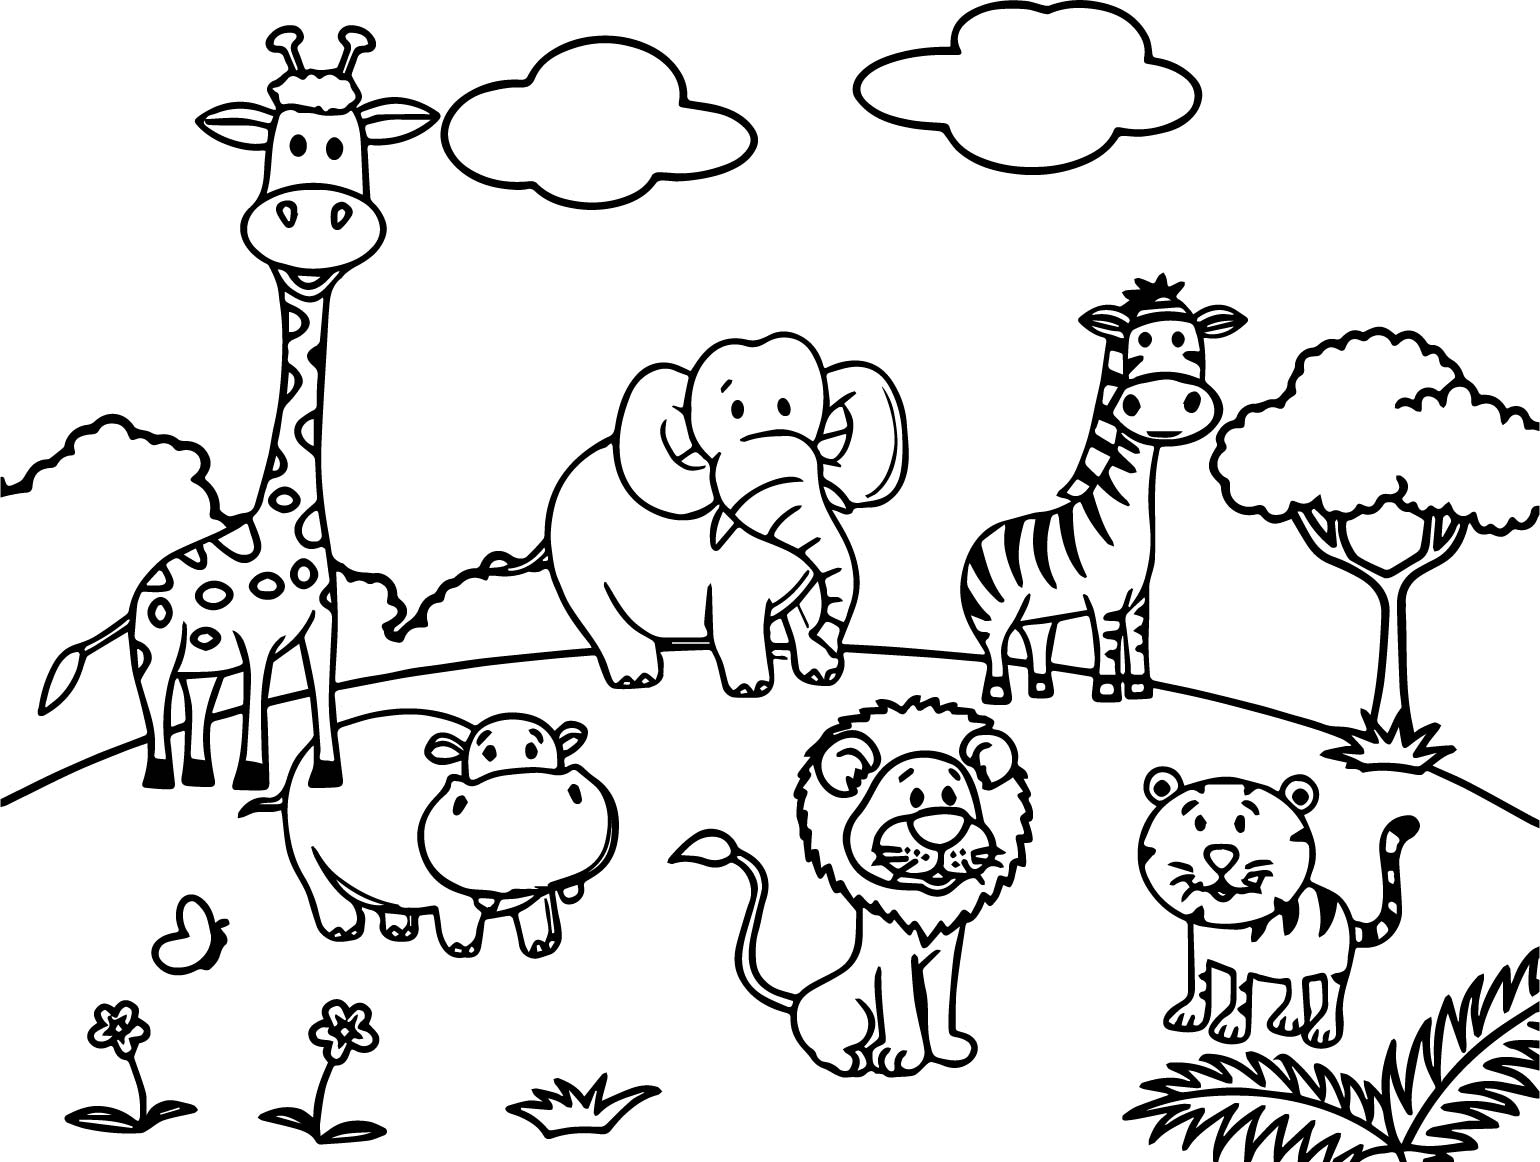 animal coloring pages for kids animal coloring pages for adults best coloring pages for for animal coloring kids pages